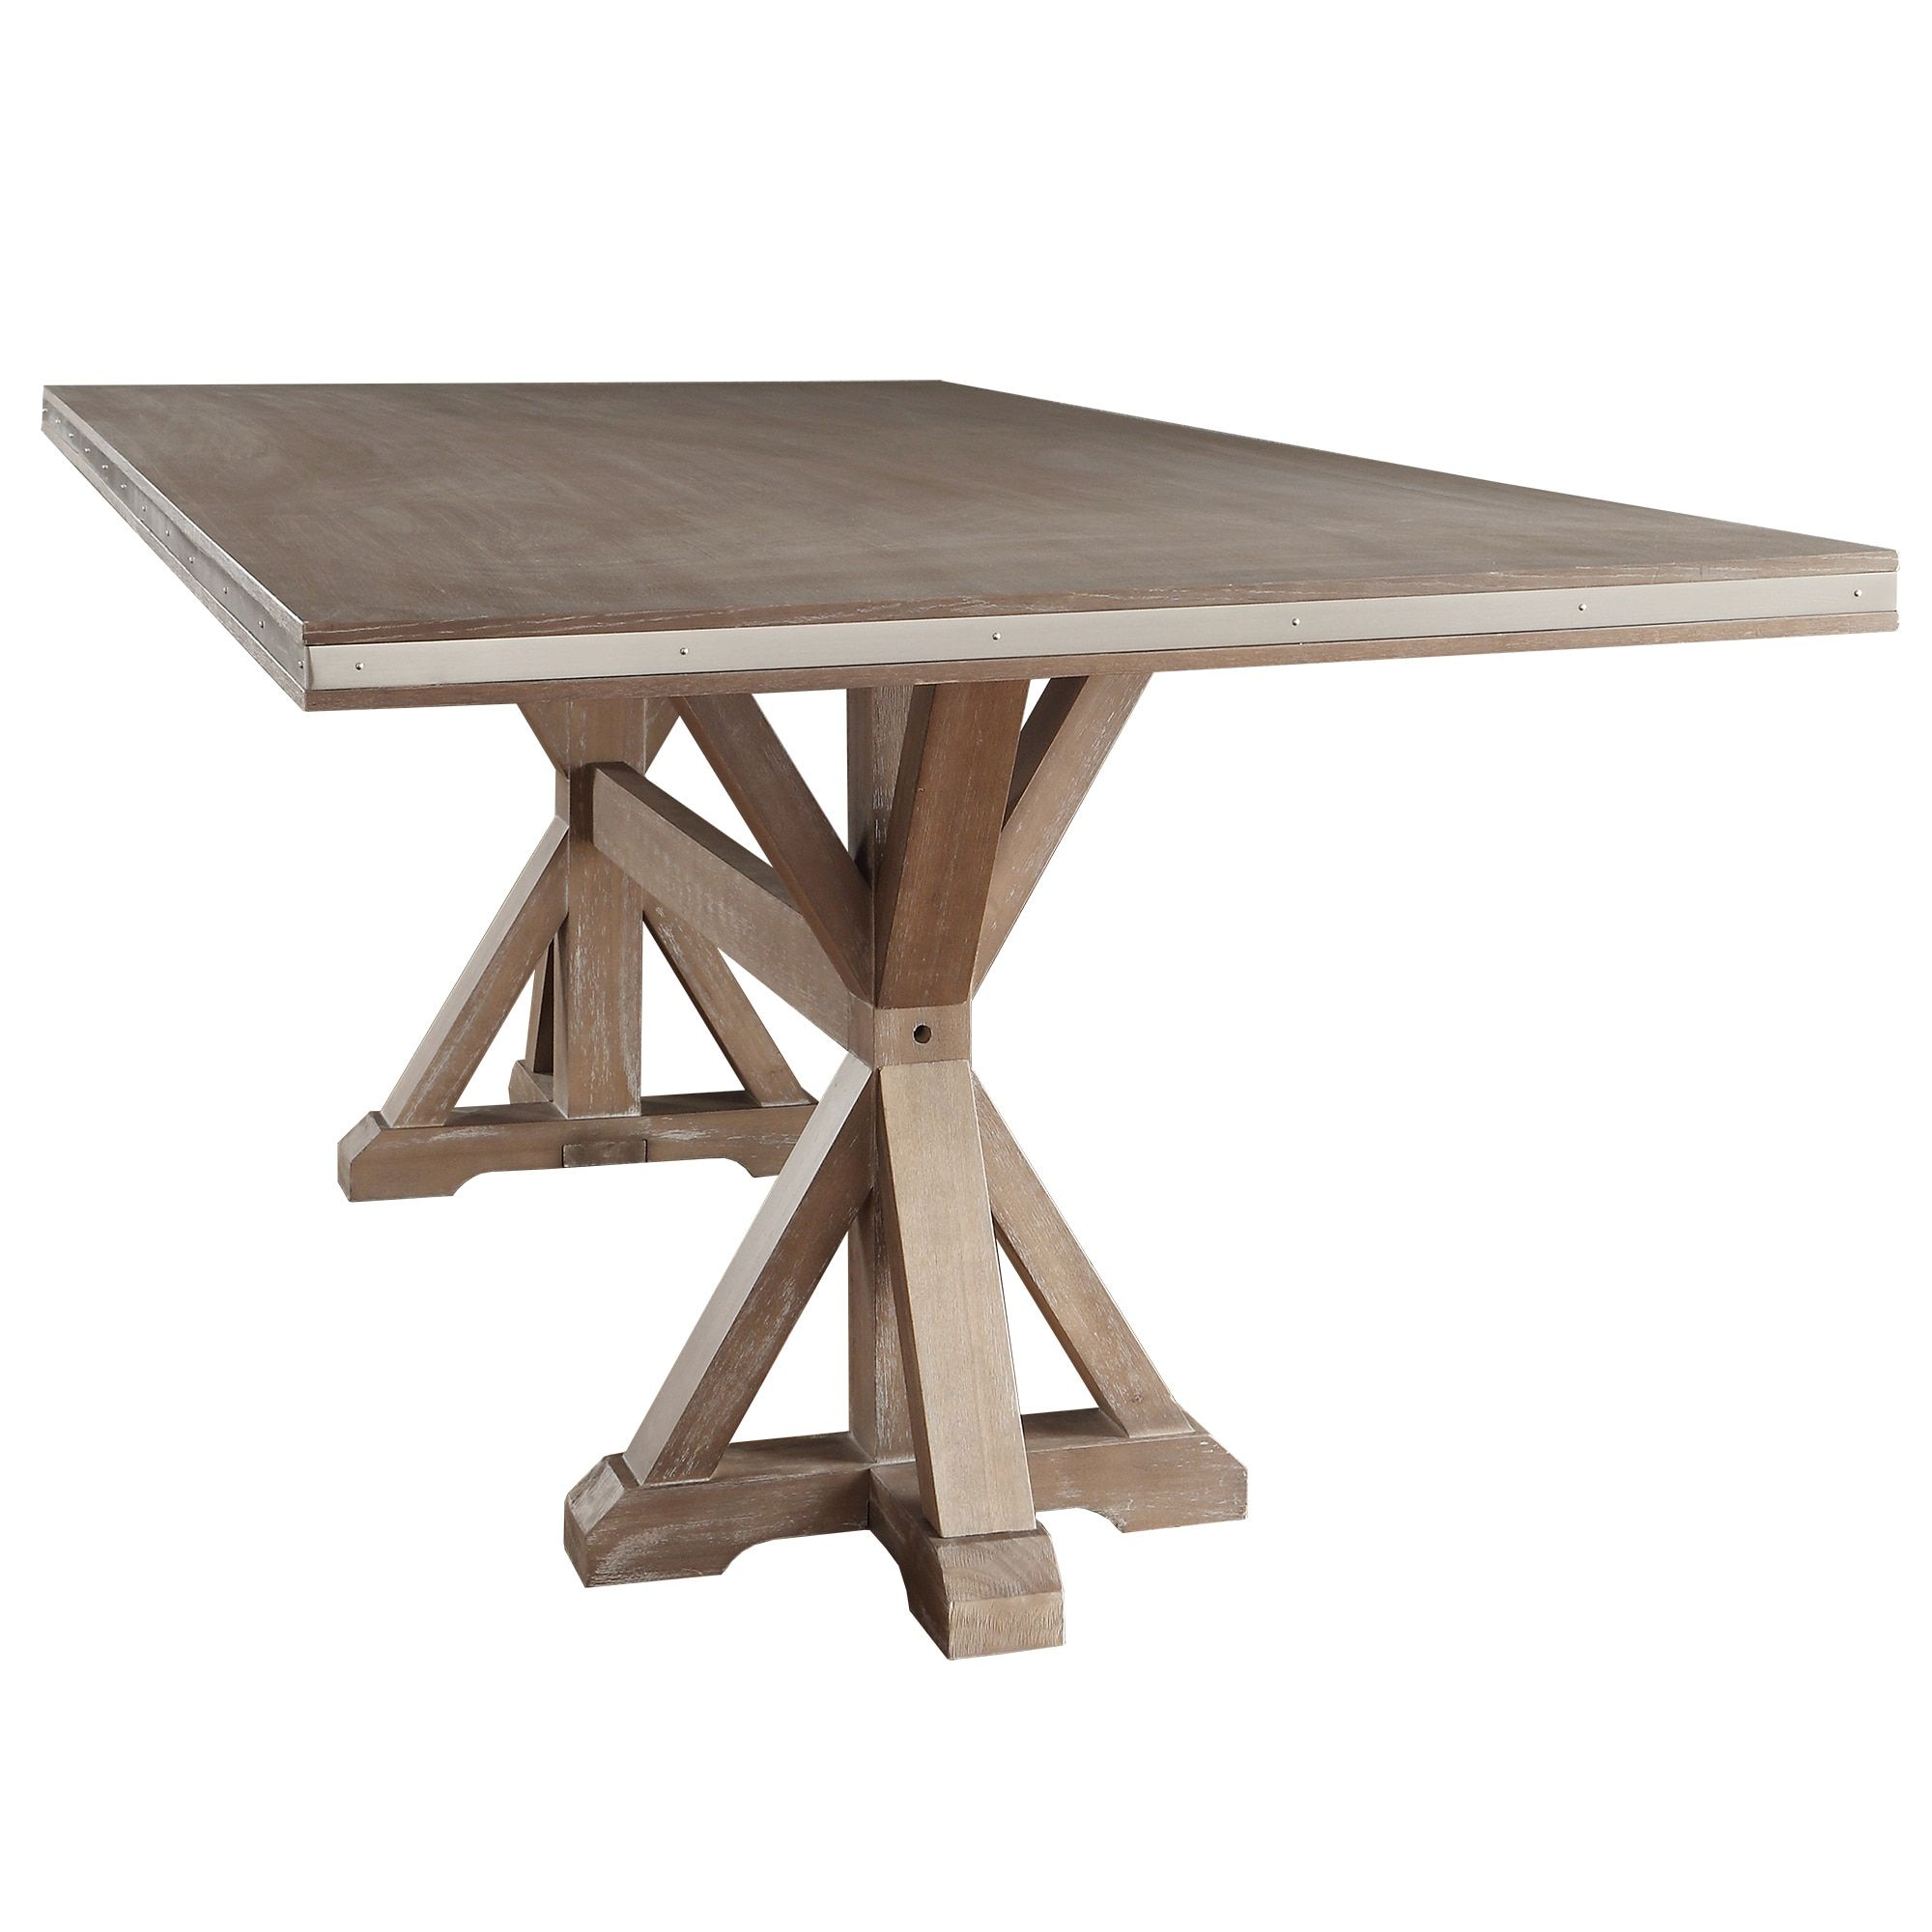 Abbott Rustic Stainless Steel Strap Oak Trestle Dining Table by iNSPIRE Q  Artisan by iNSPIRE Q